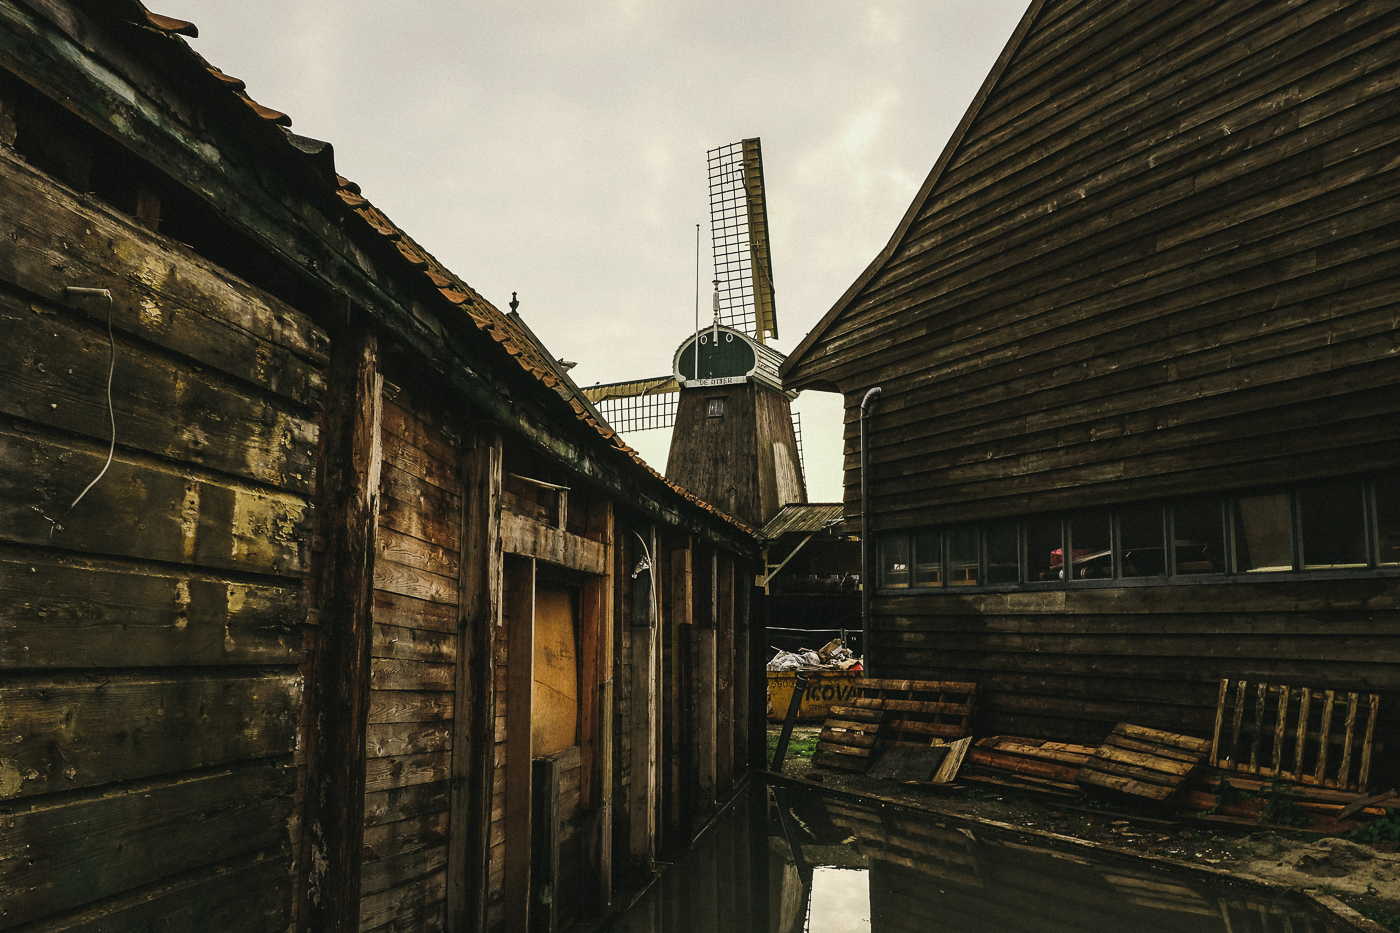 hb images - windmill - 3_